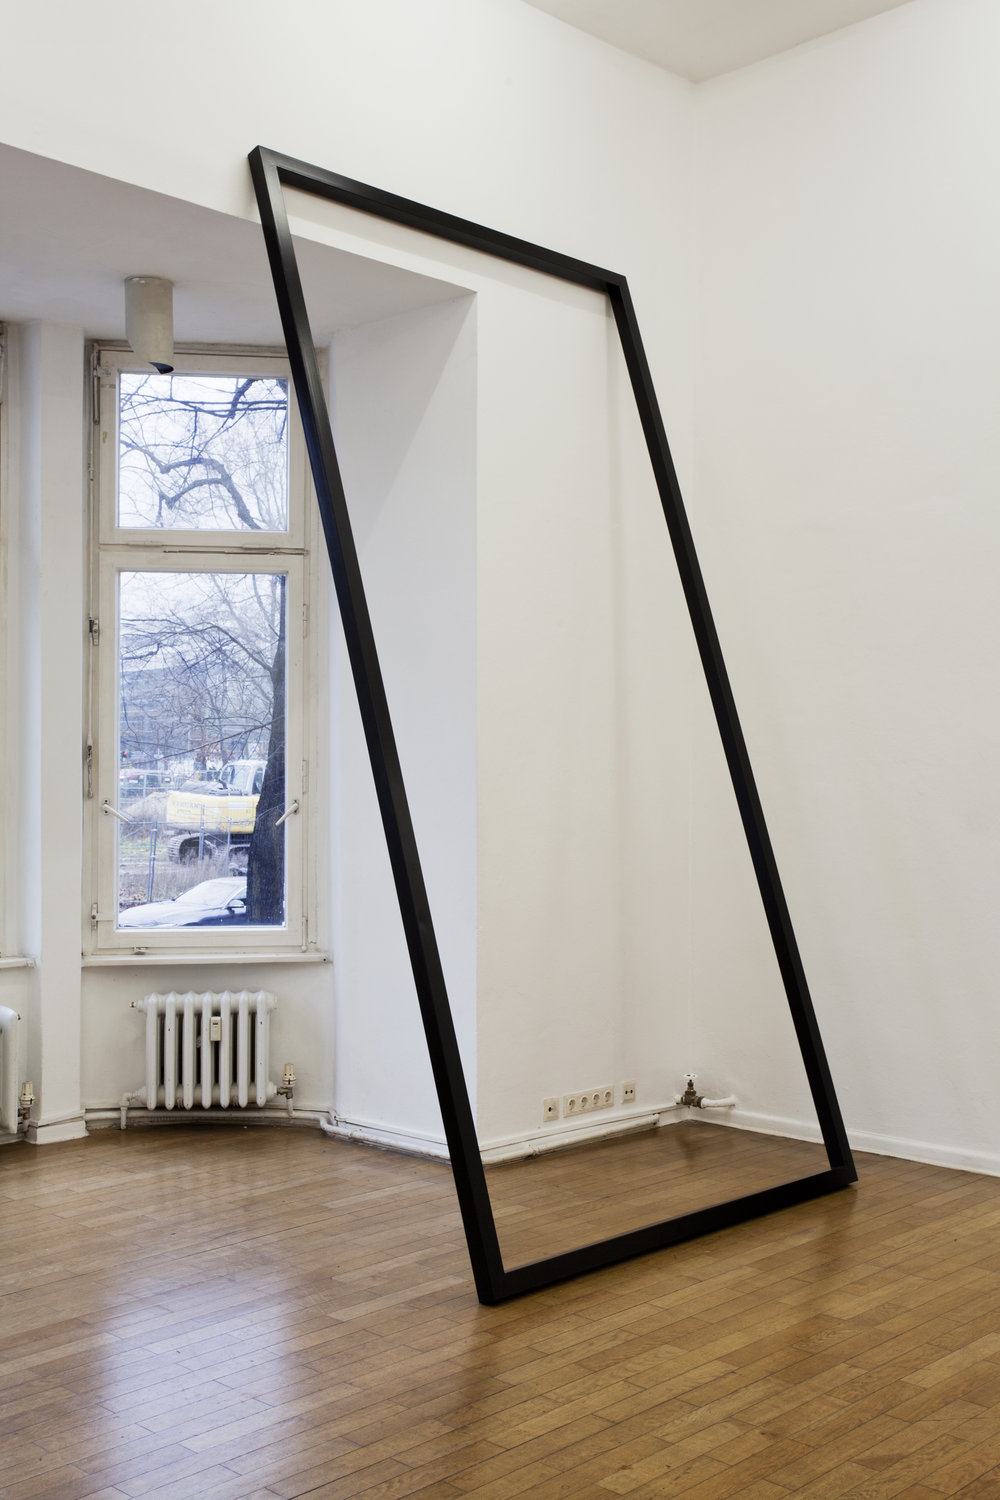 3DPLUS // installation view  2017 // various sizes  steel and varnish  Meisterschülerpreis @ Haus am Lützowplatz